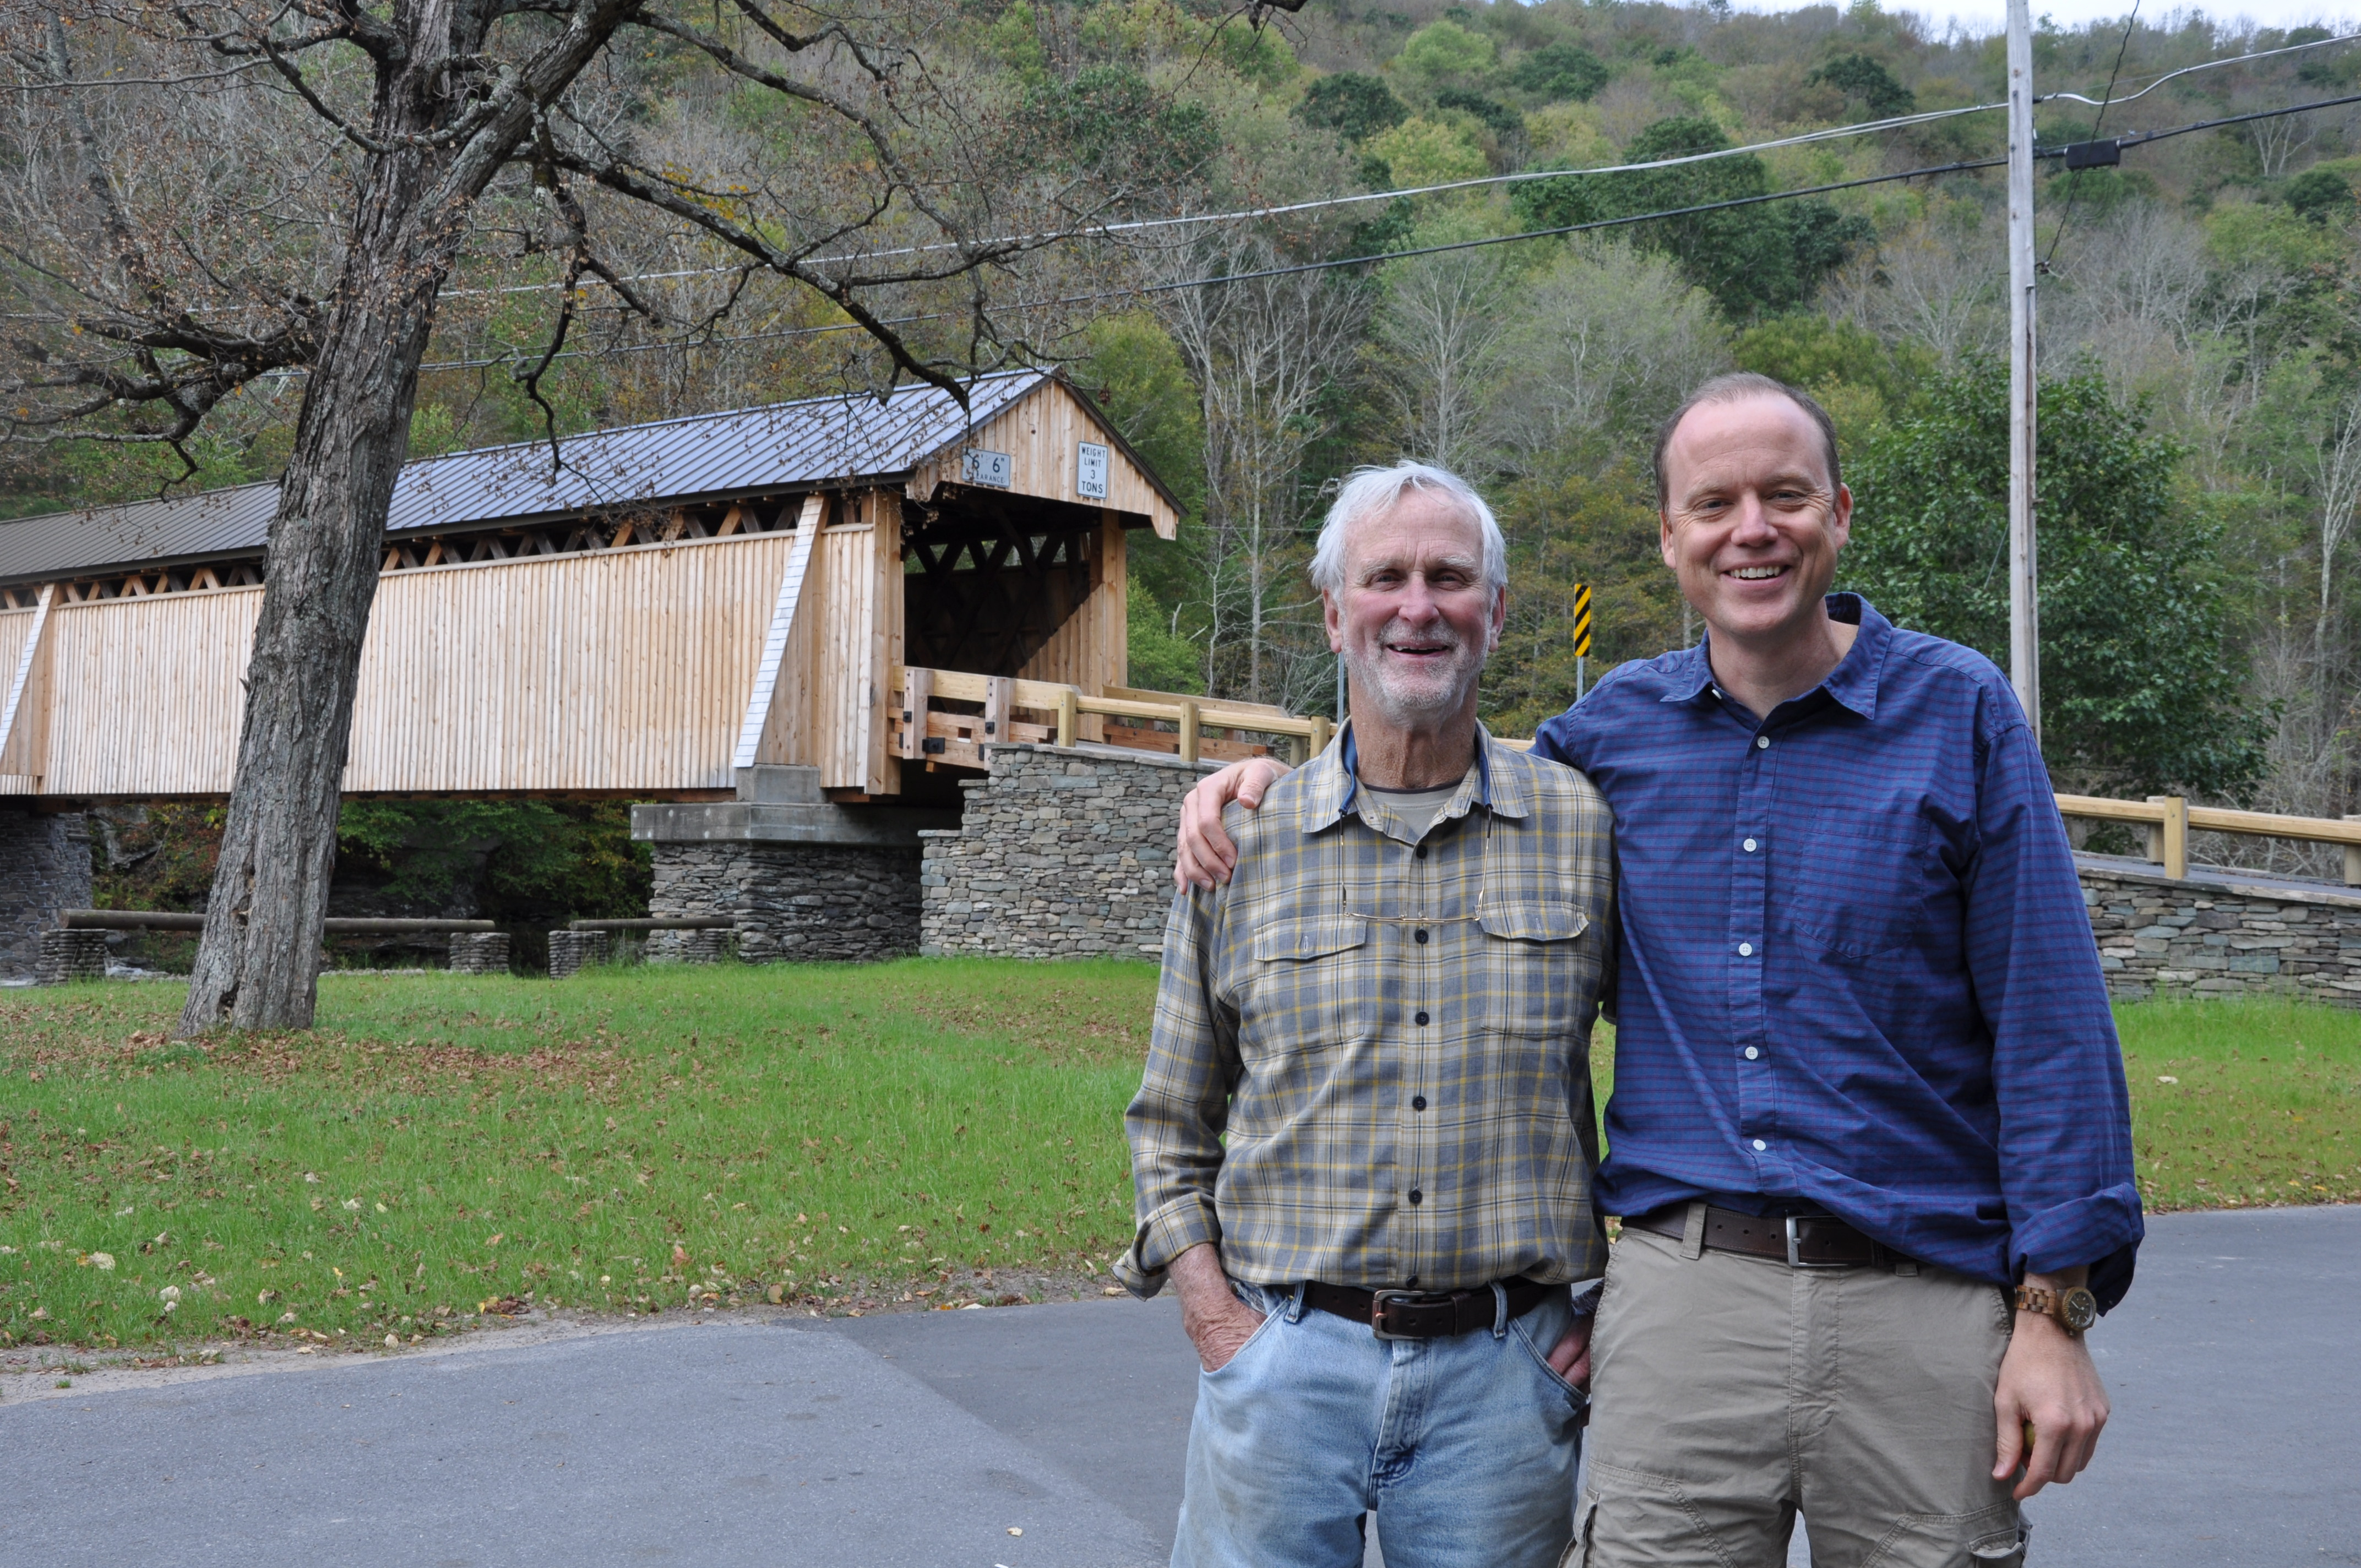 OSI founding Chairman John Adams (left) and Terrence Nolan, Senior Vice President Conservation Transactions, in front of the bridge.